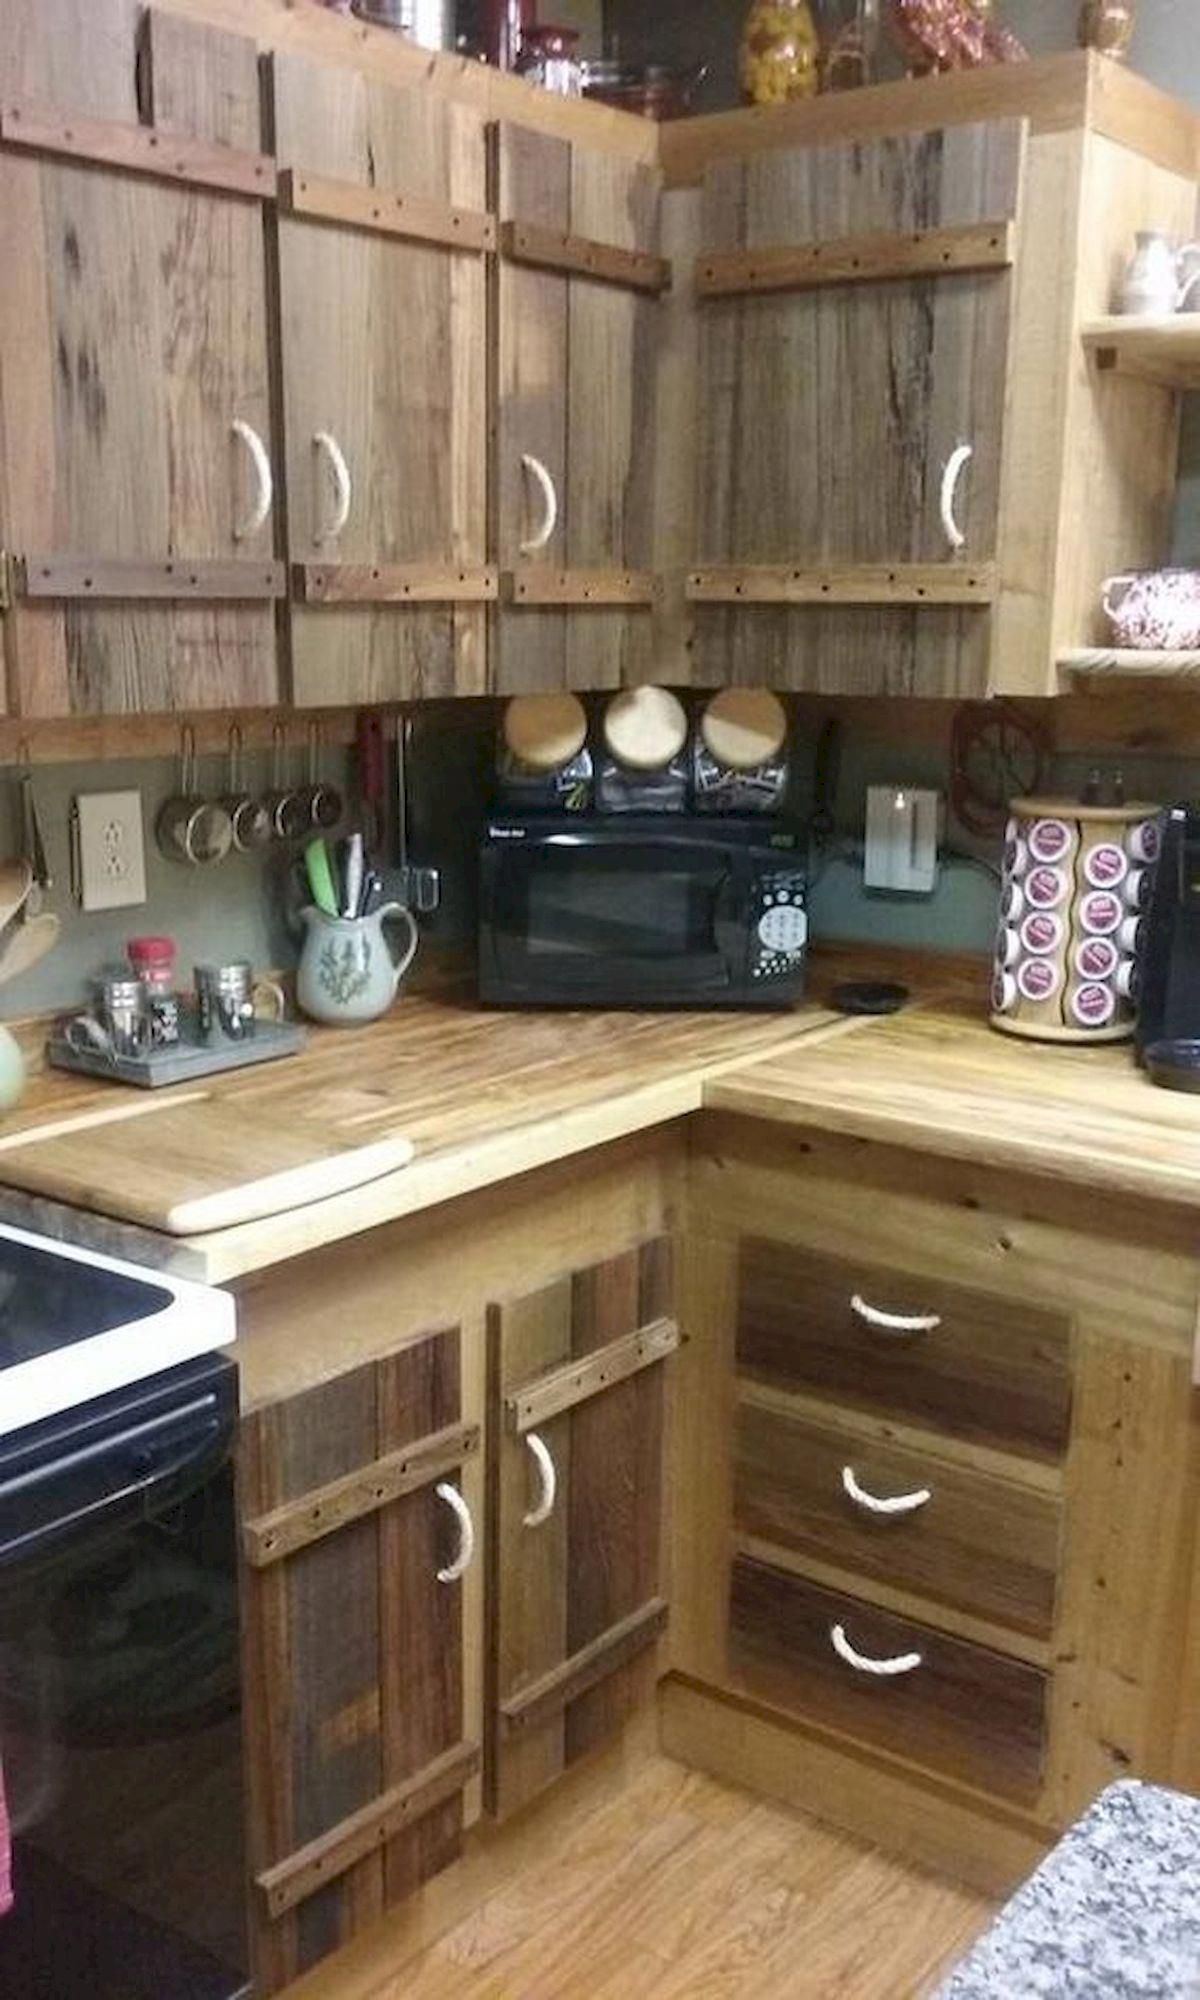 Pin By Randy Eason On Kitchen Cabinets In 2020 Pallet Kitchen Cabinets Rustic Kitchen Cabinets Kitchen Cabinet Design